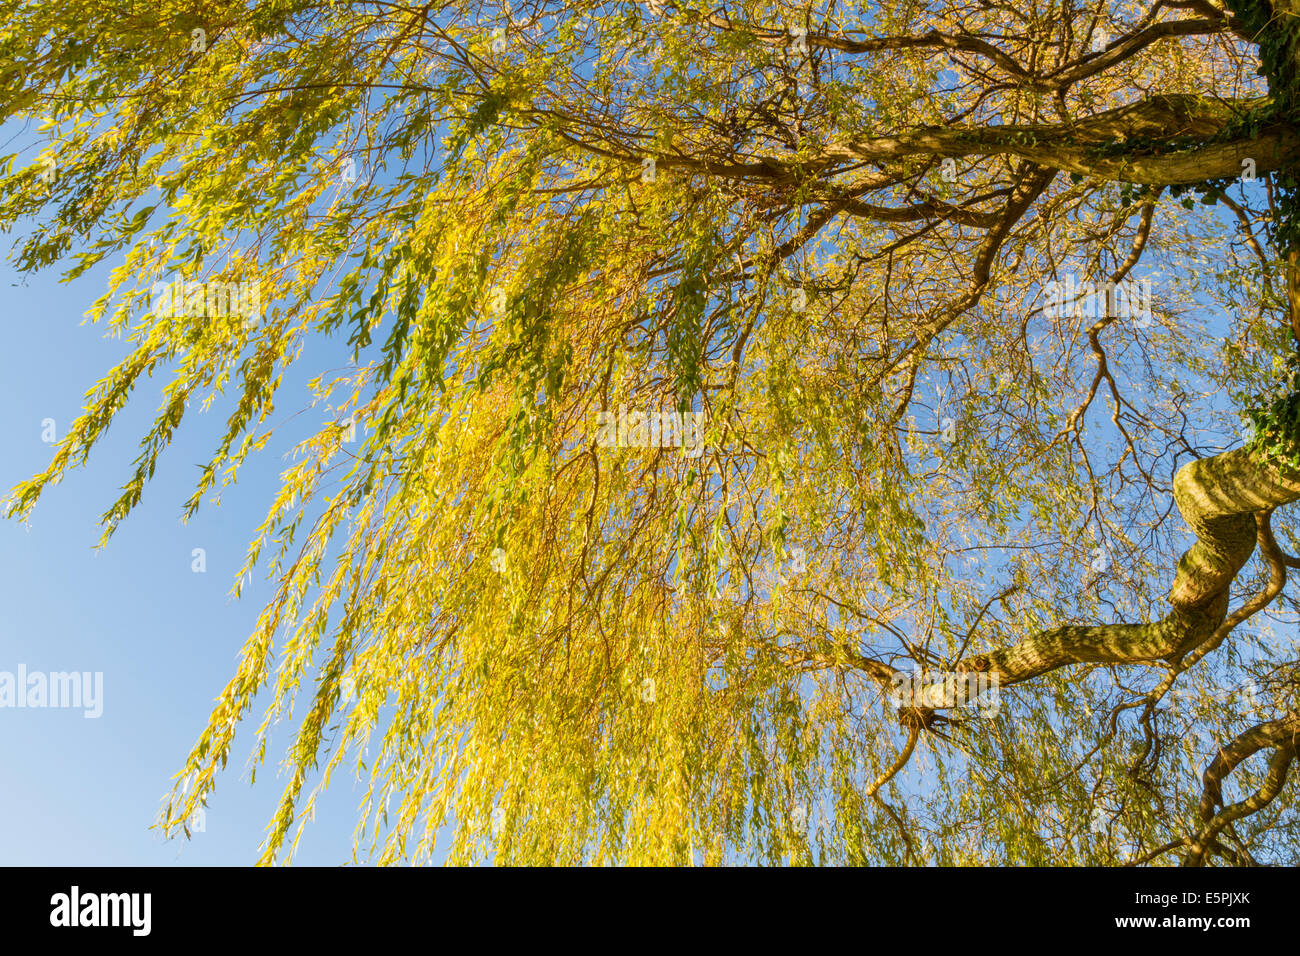 Looking up from below a yellow weeping willow tree in autumn, England, UK - Stock Image